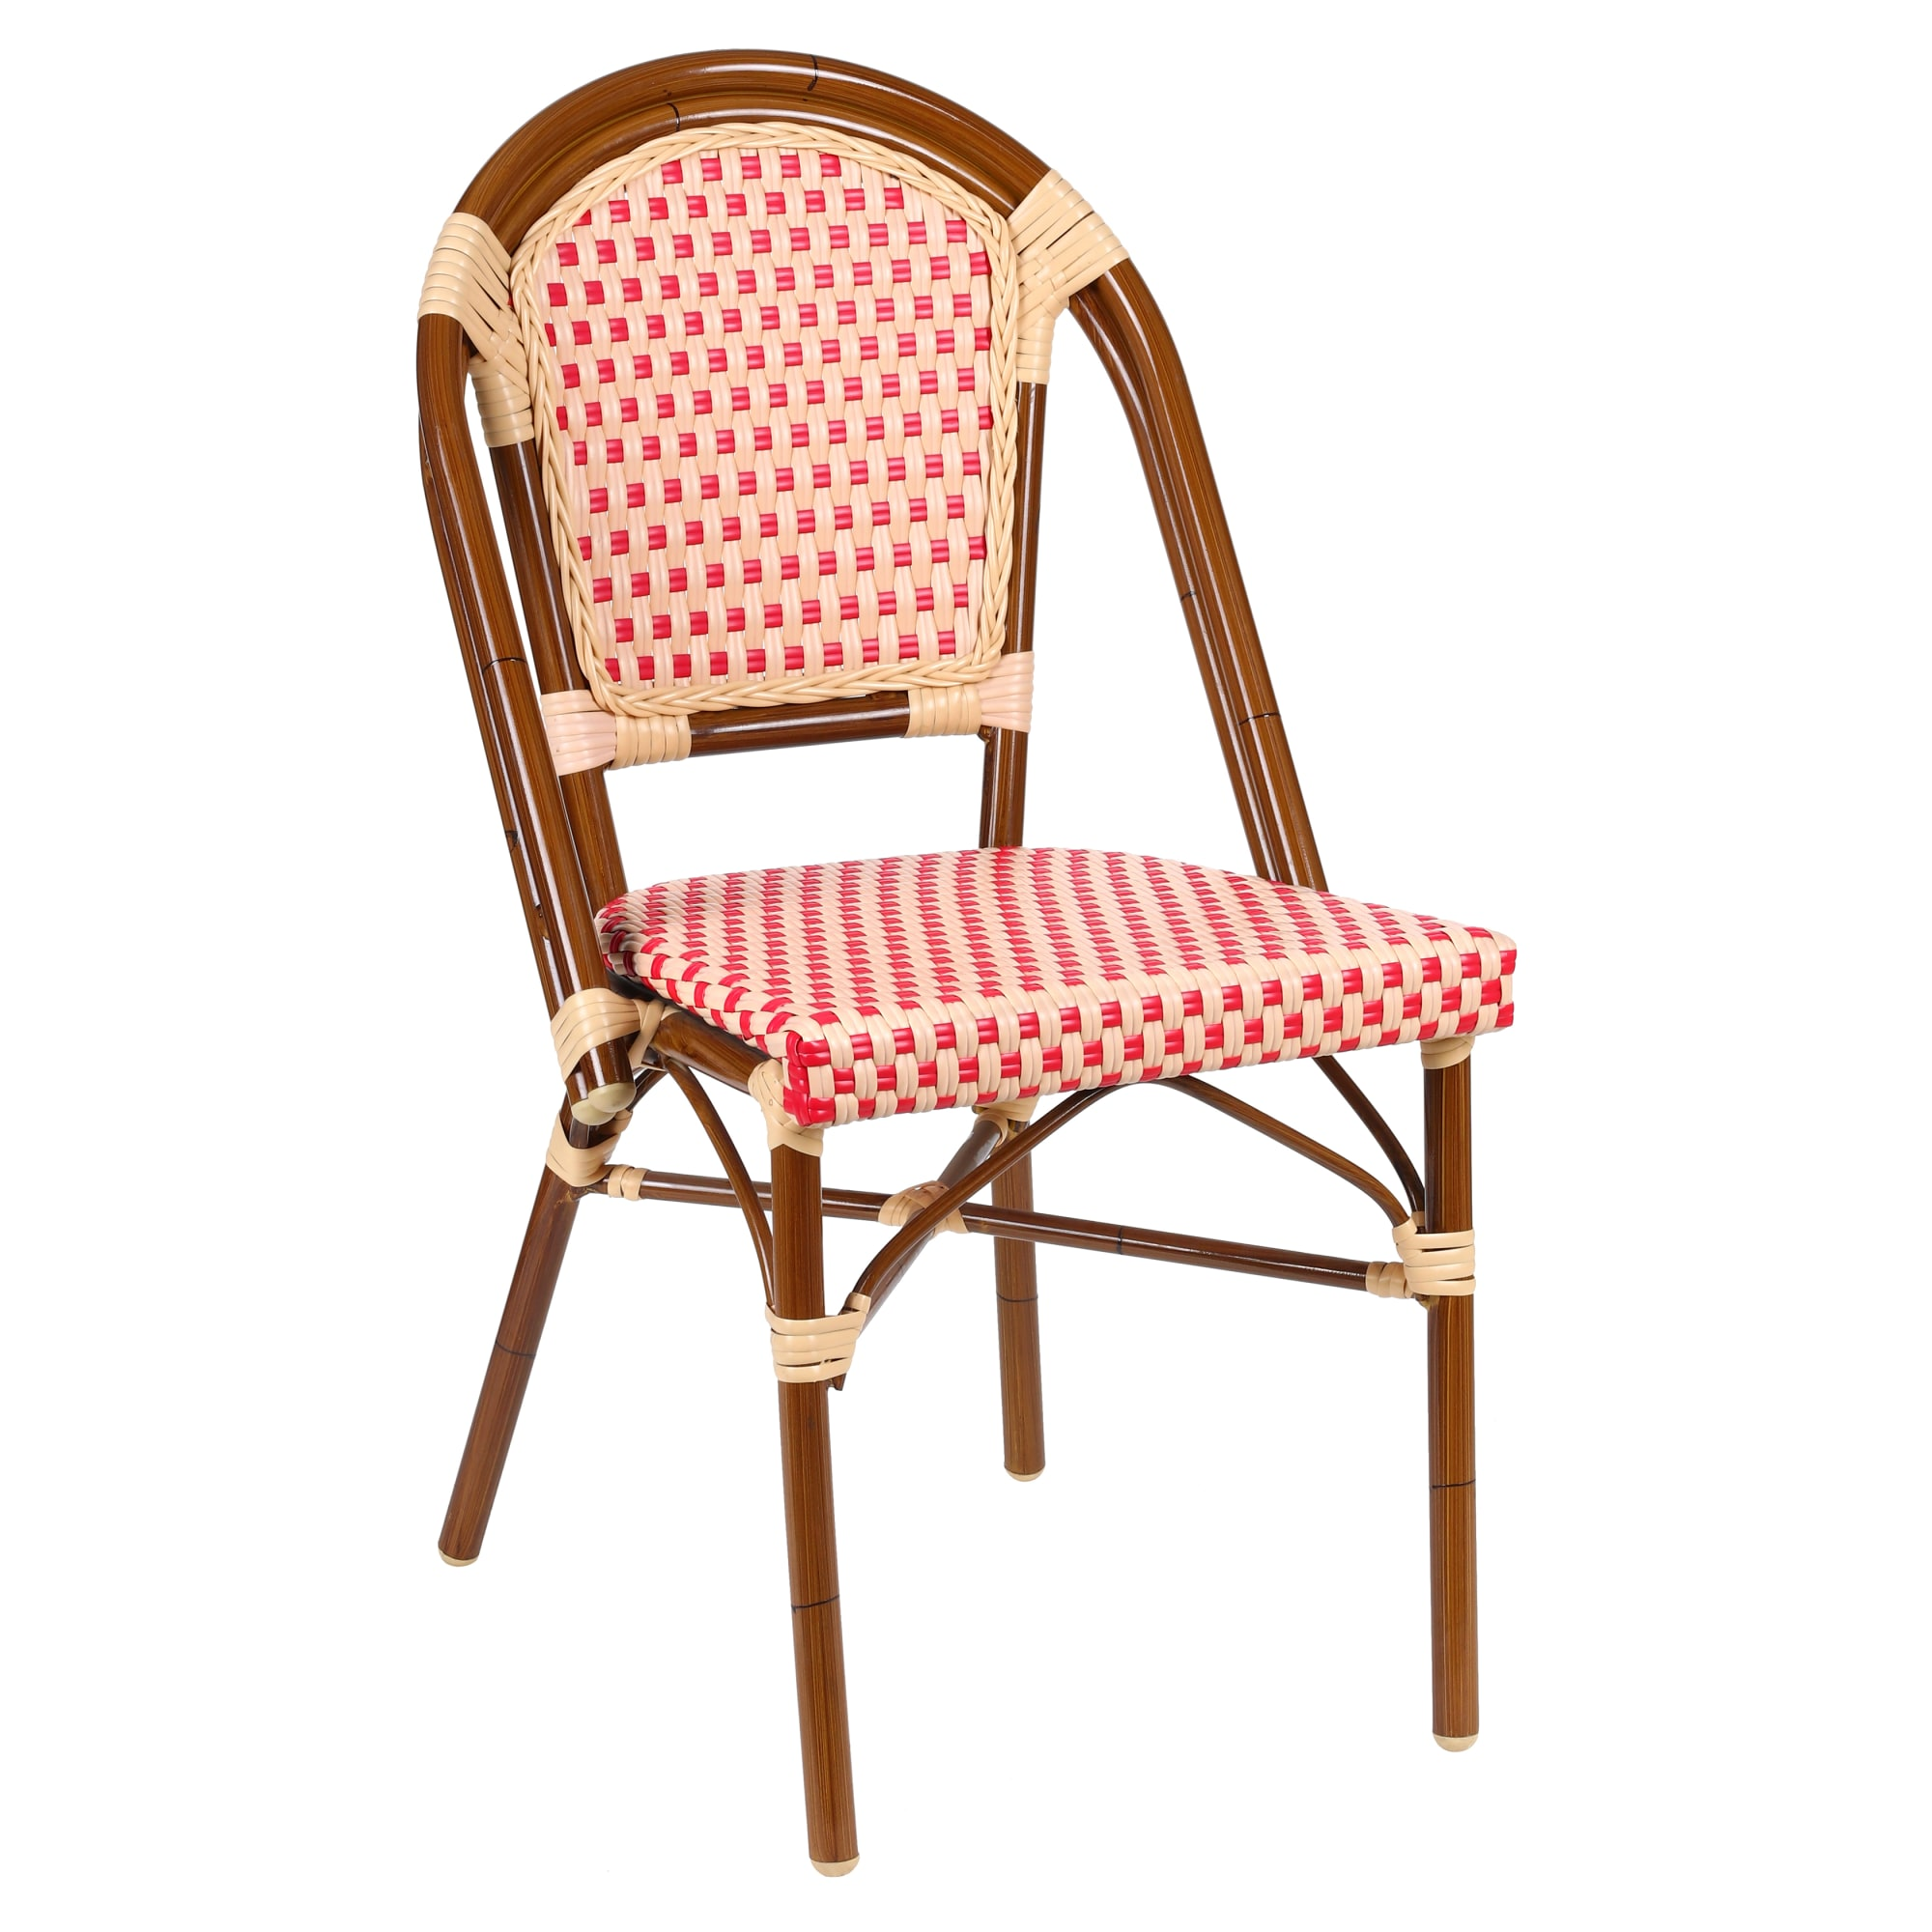 Aluminum Bamboo Patio Chair With Red & Cream Rattan with Aluminum Bamboo Patio Chair With Red & Cream Rattan